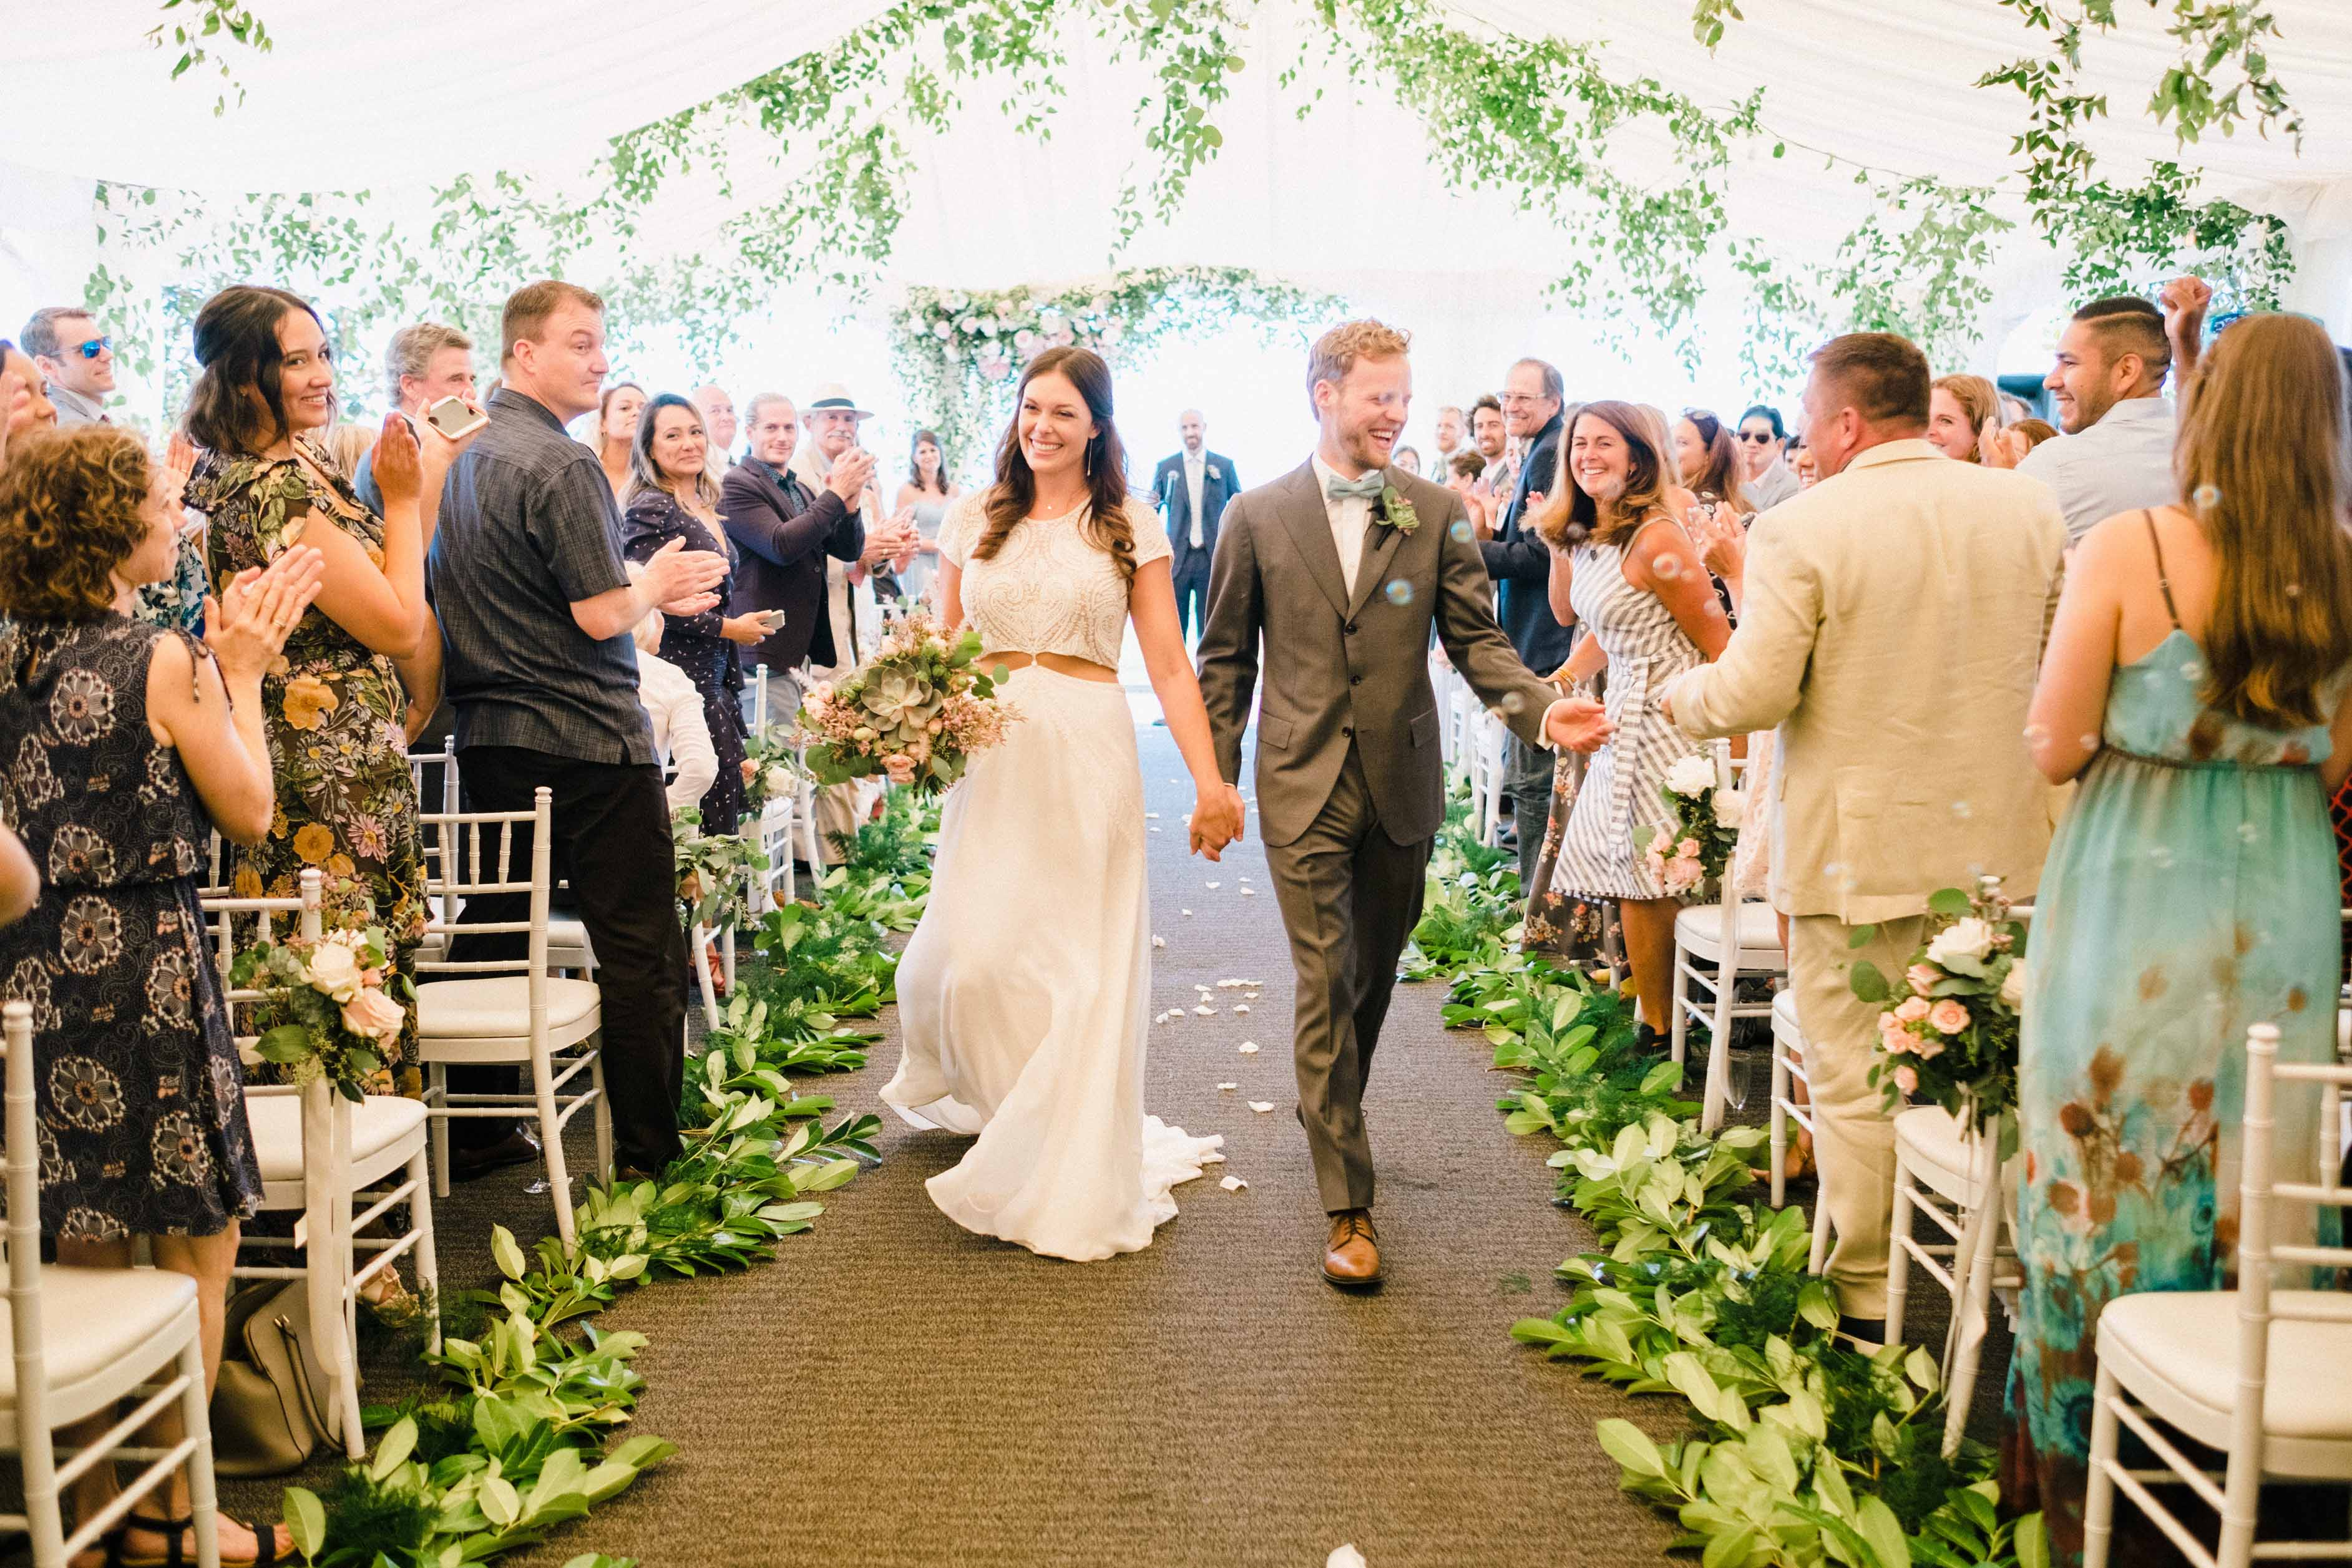 Couple just married walking down the aisle at their Woodmark Hotel wedding, Flora Nova Design Seattle